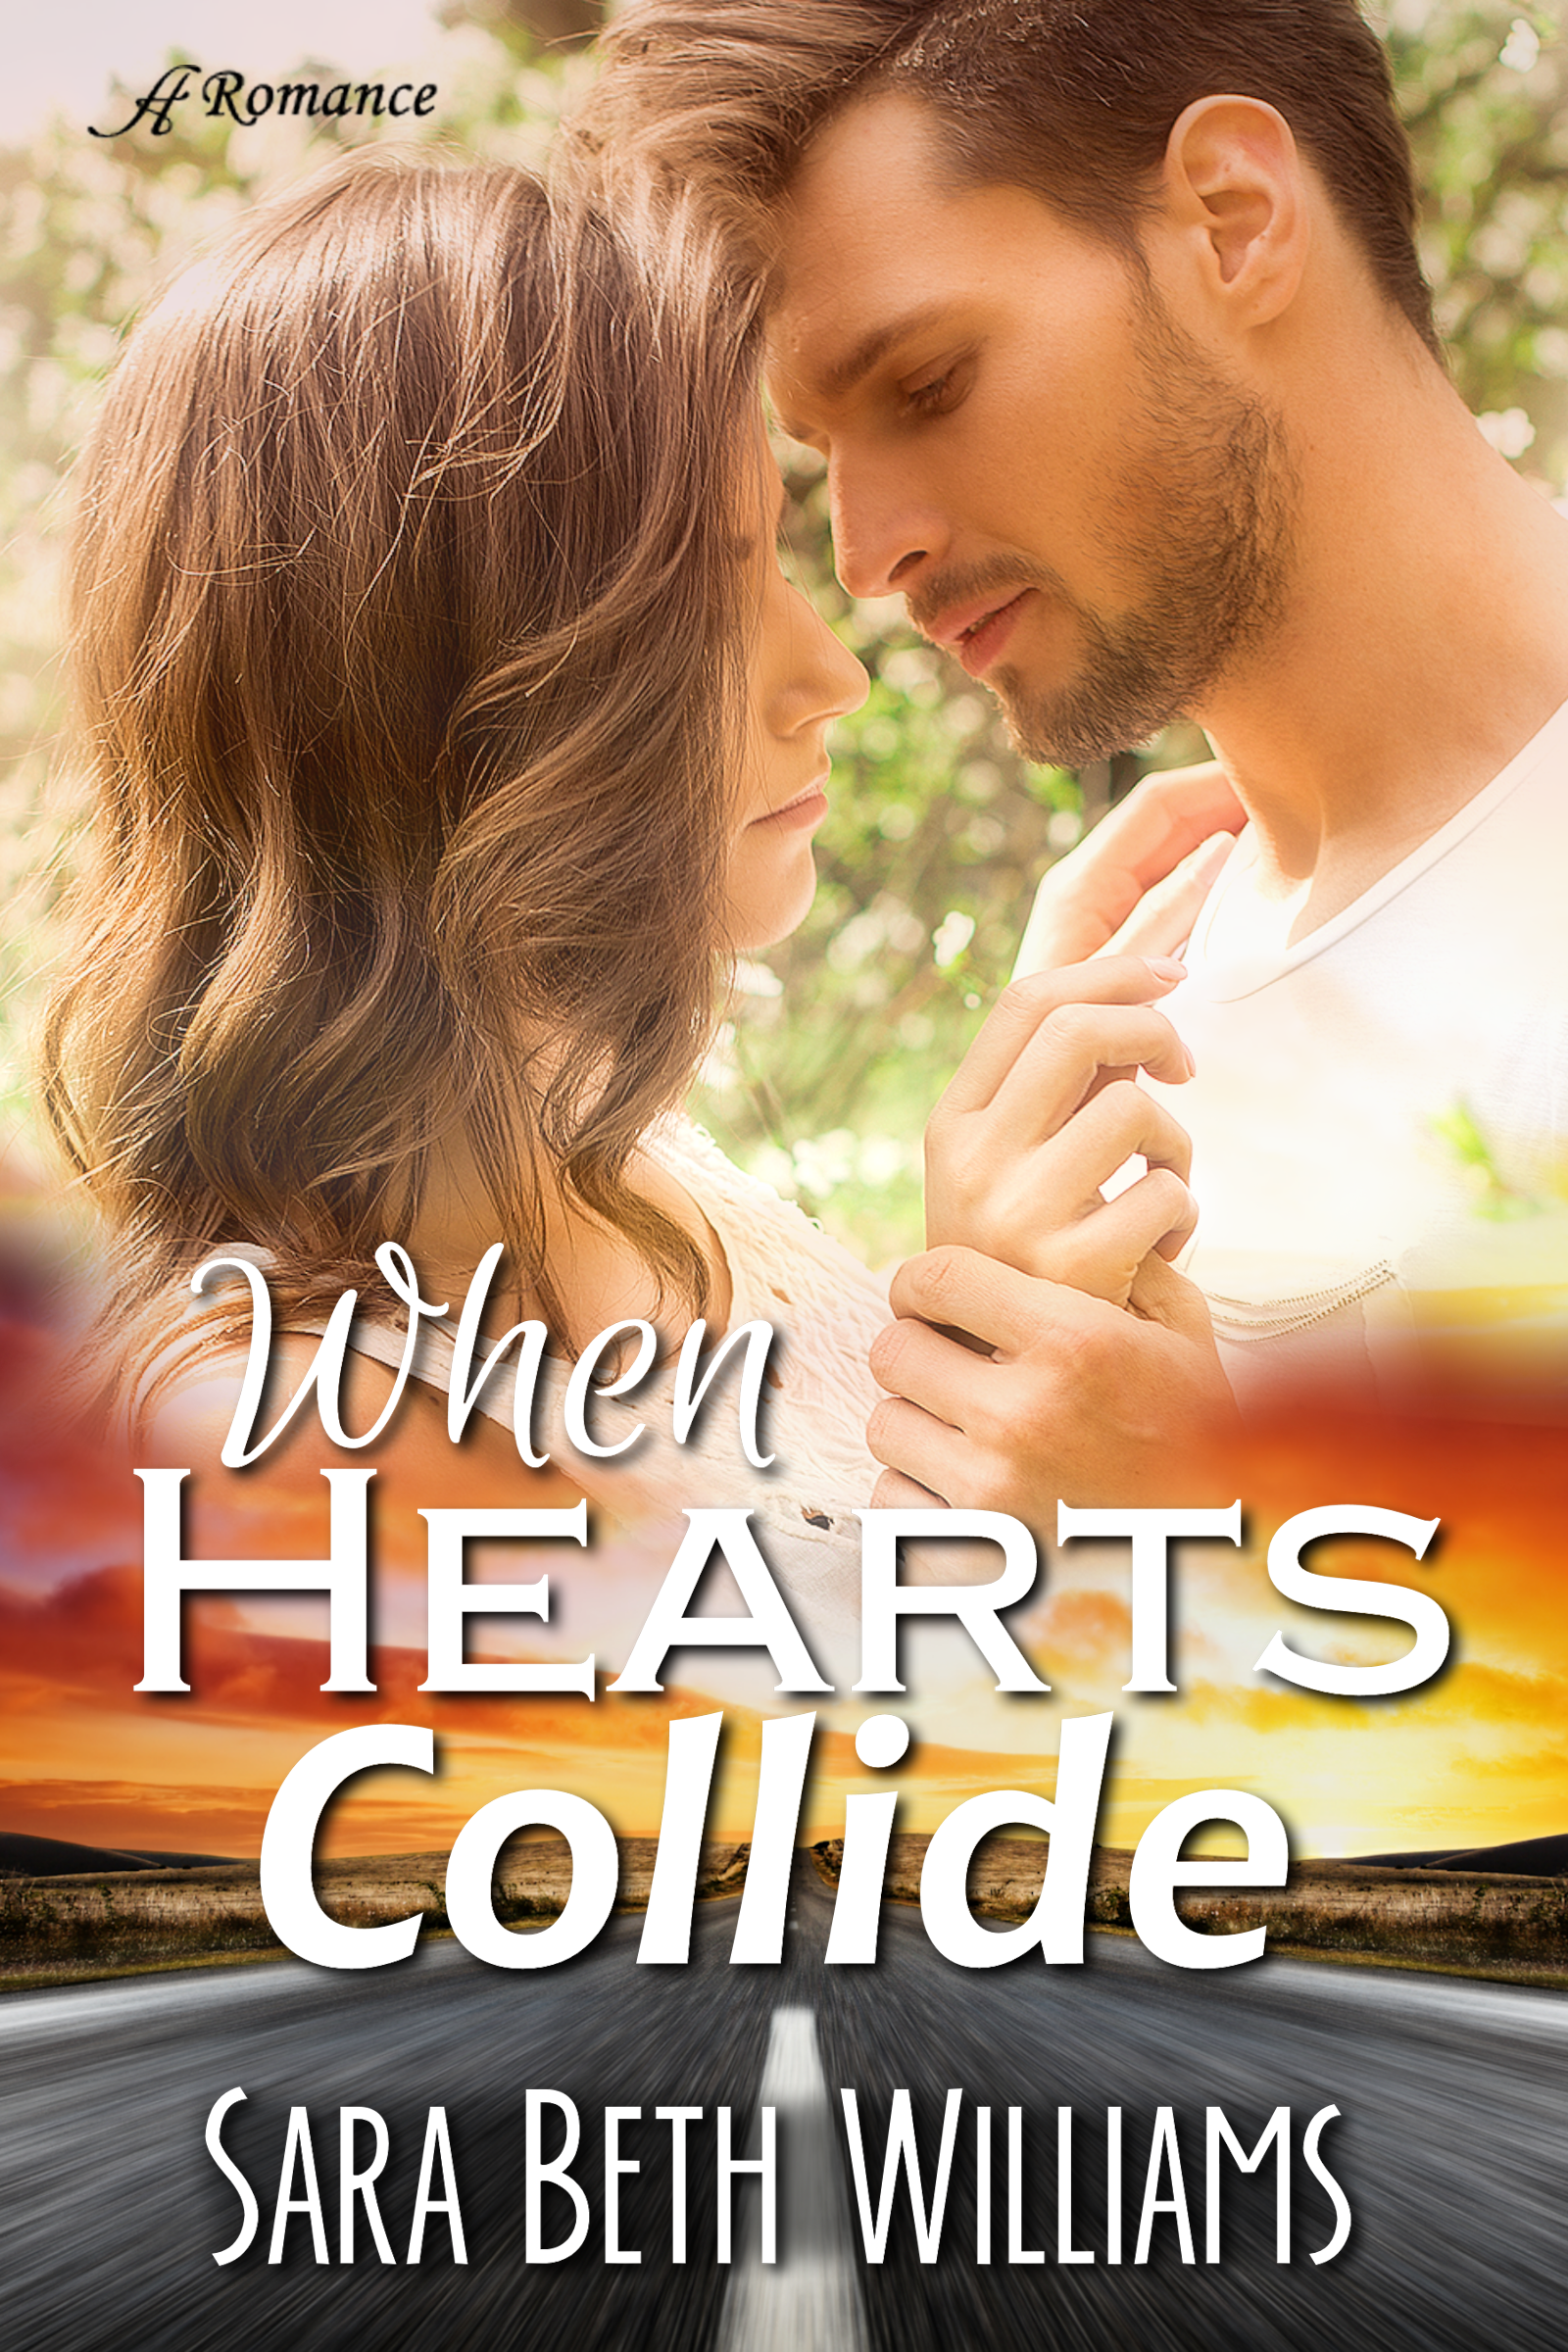 WHEN HEARTS COLLIDE BOOK COVER